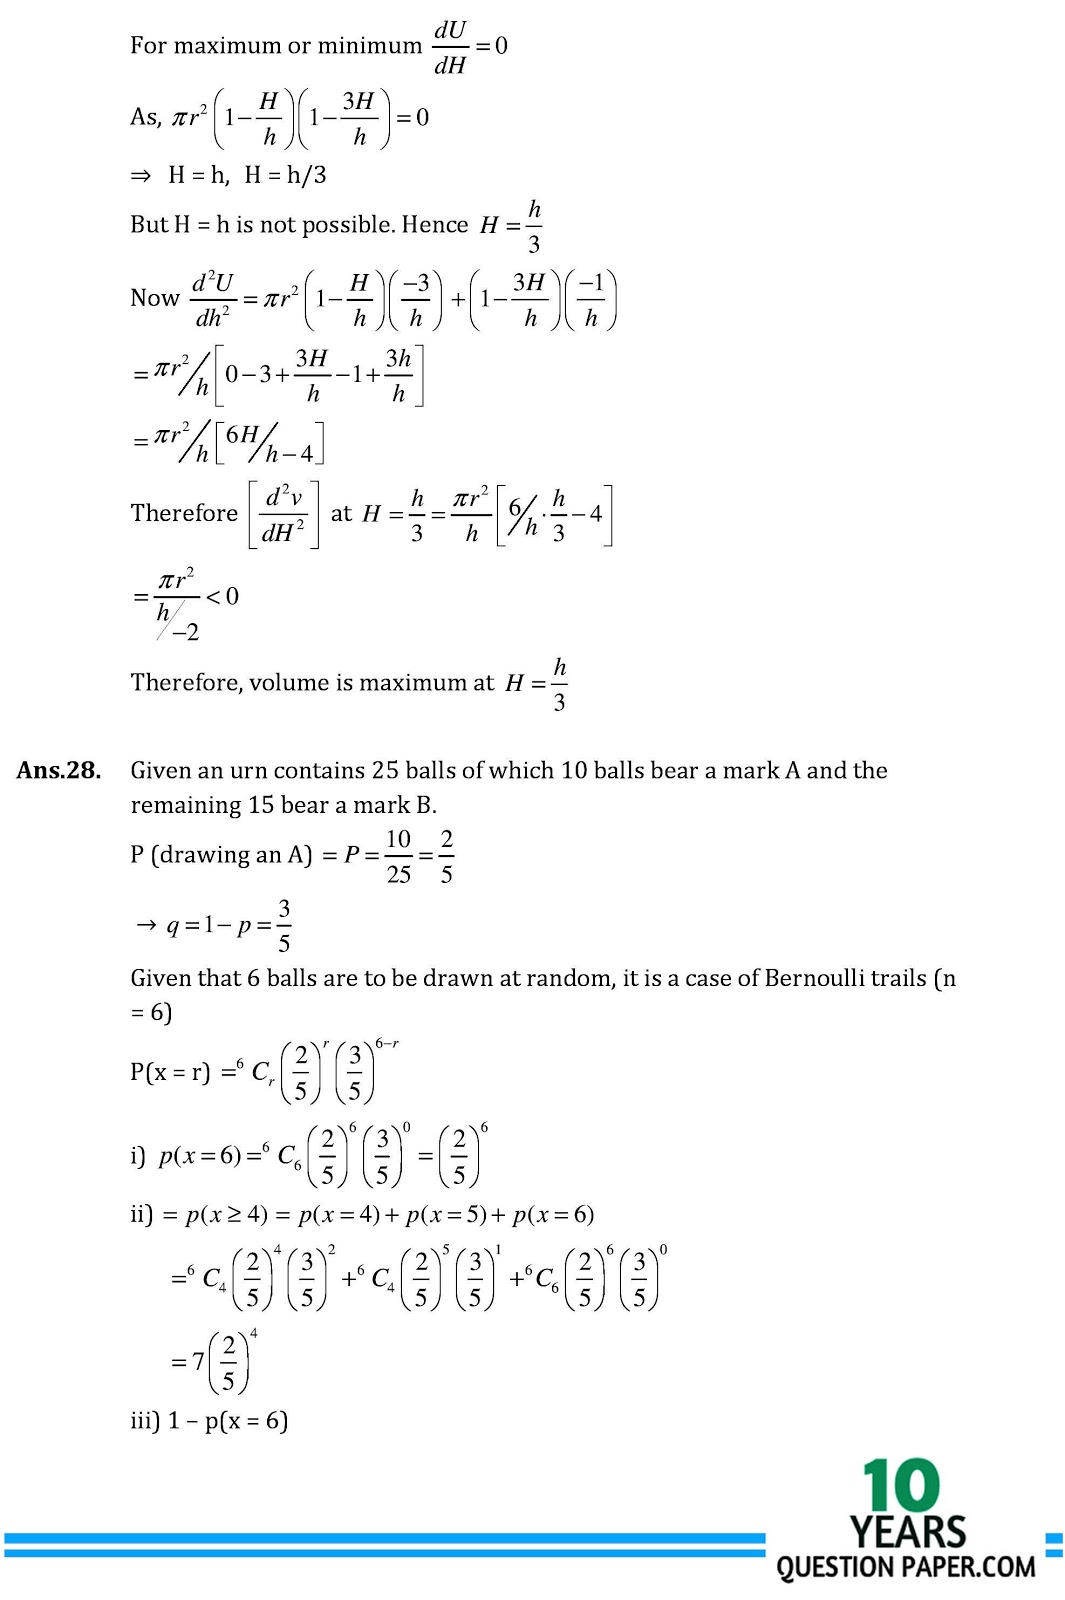 CBSE class 12th Mathematics solved sample paper